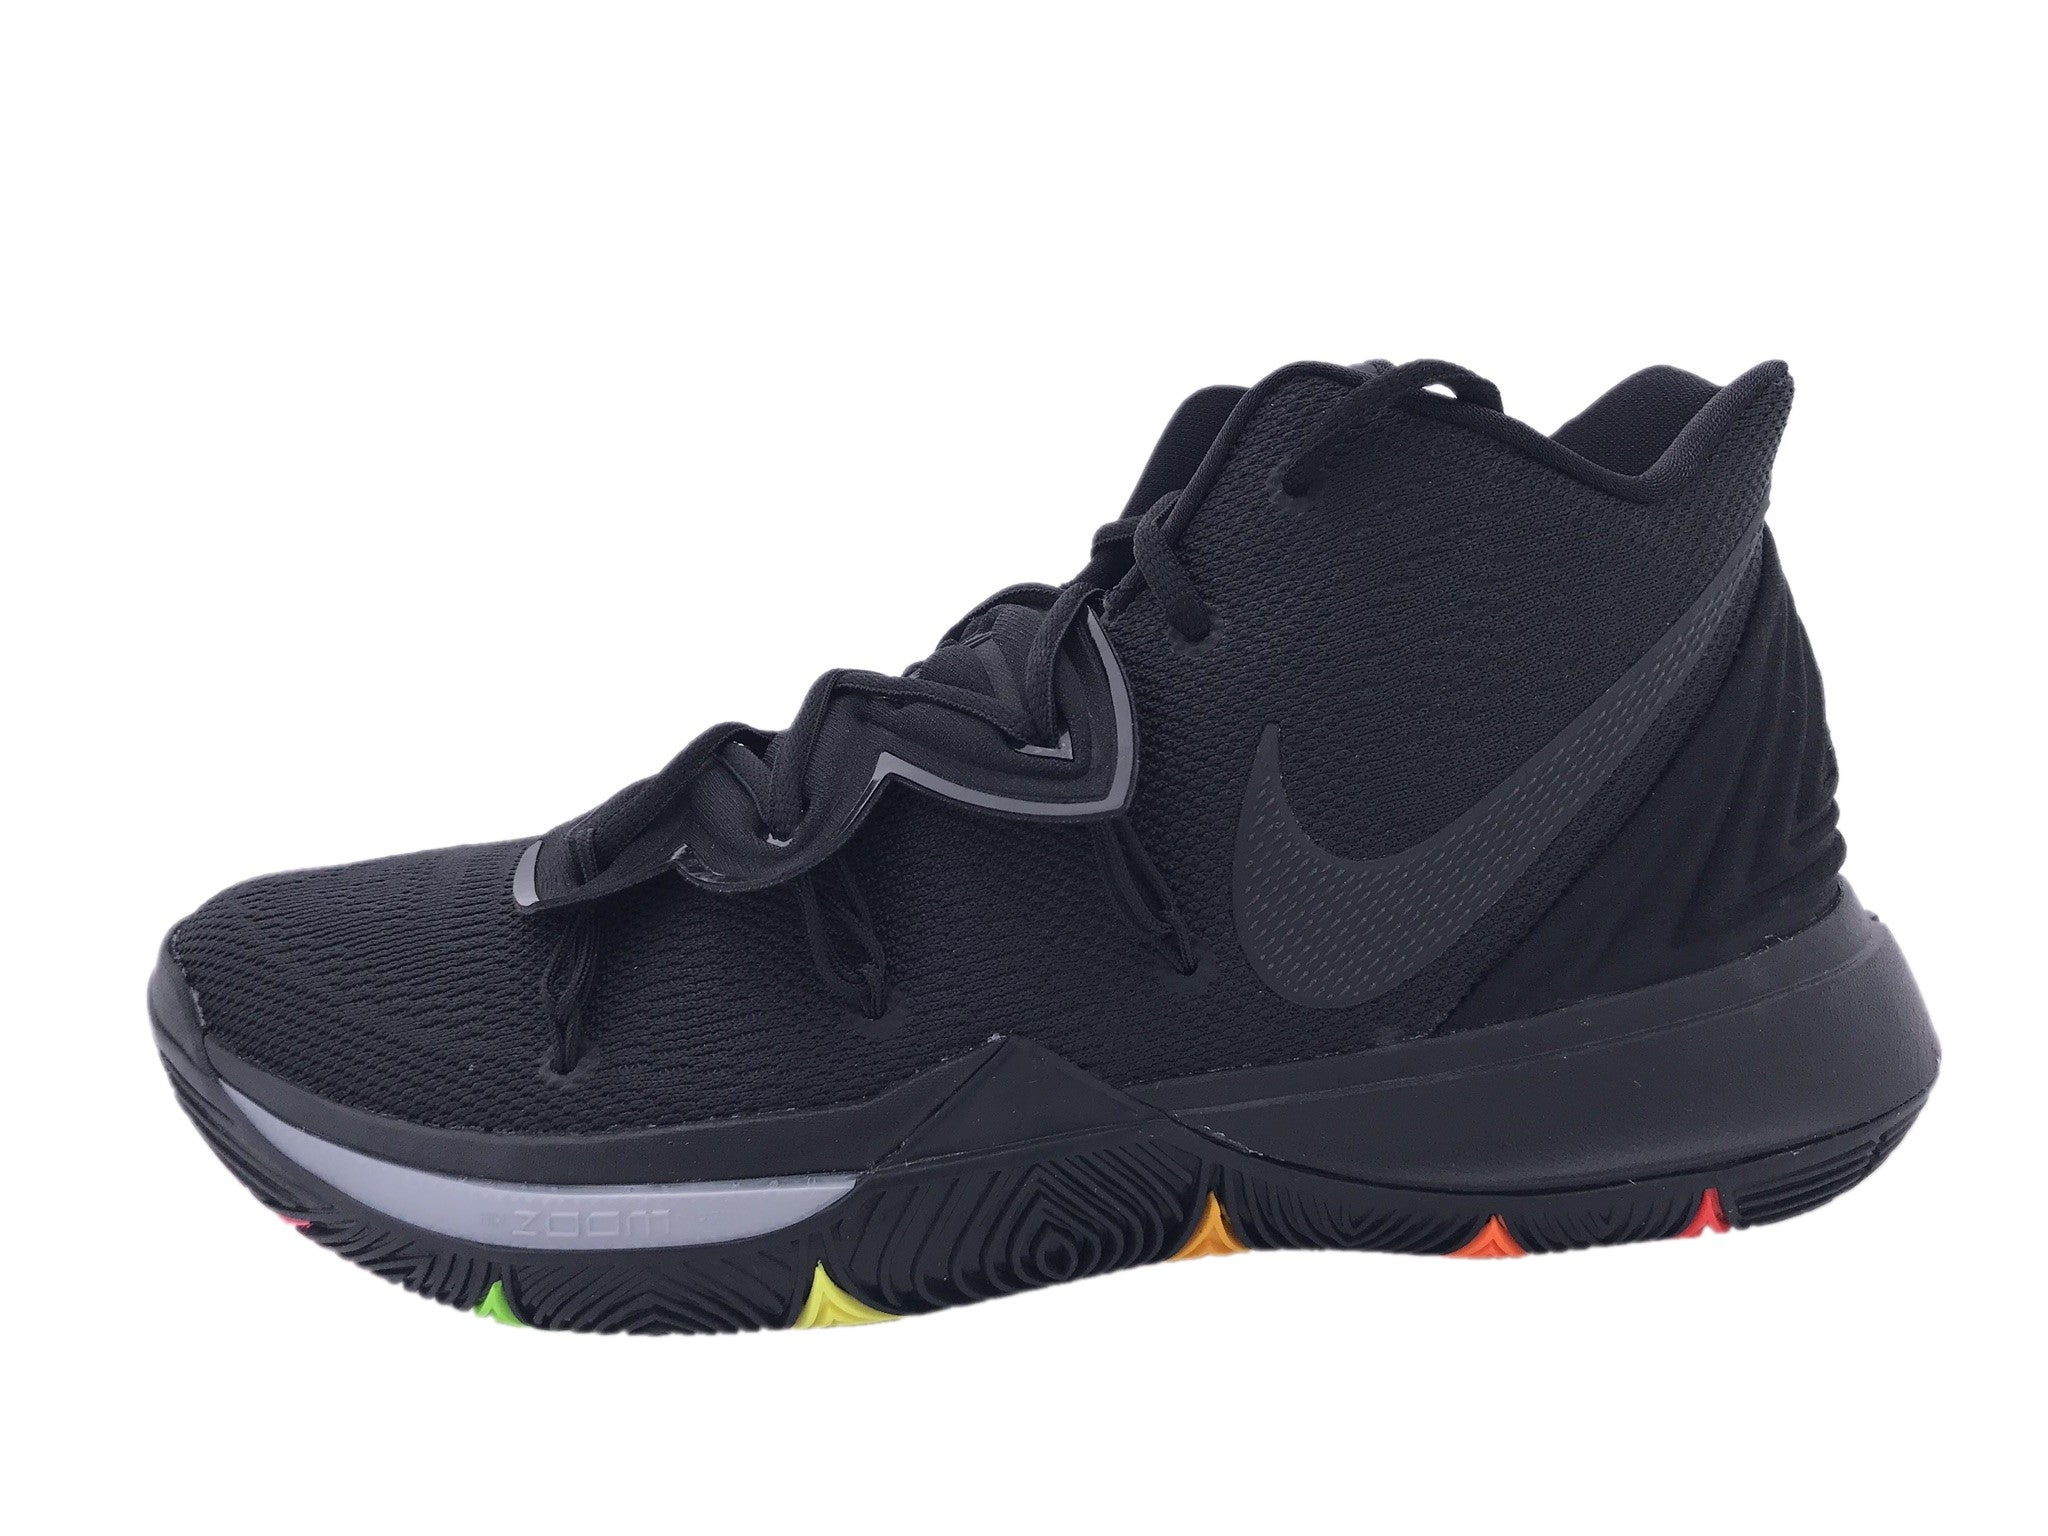 Nike Kyrie 5 Basketball Boot/Shoe NK-AO2918-001